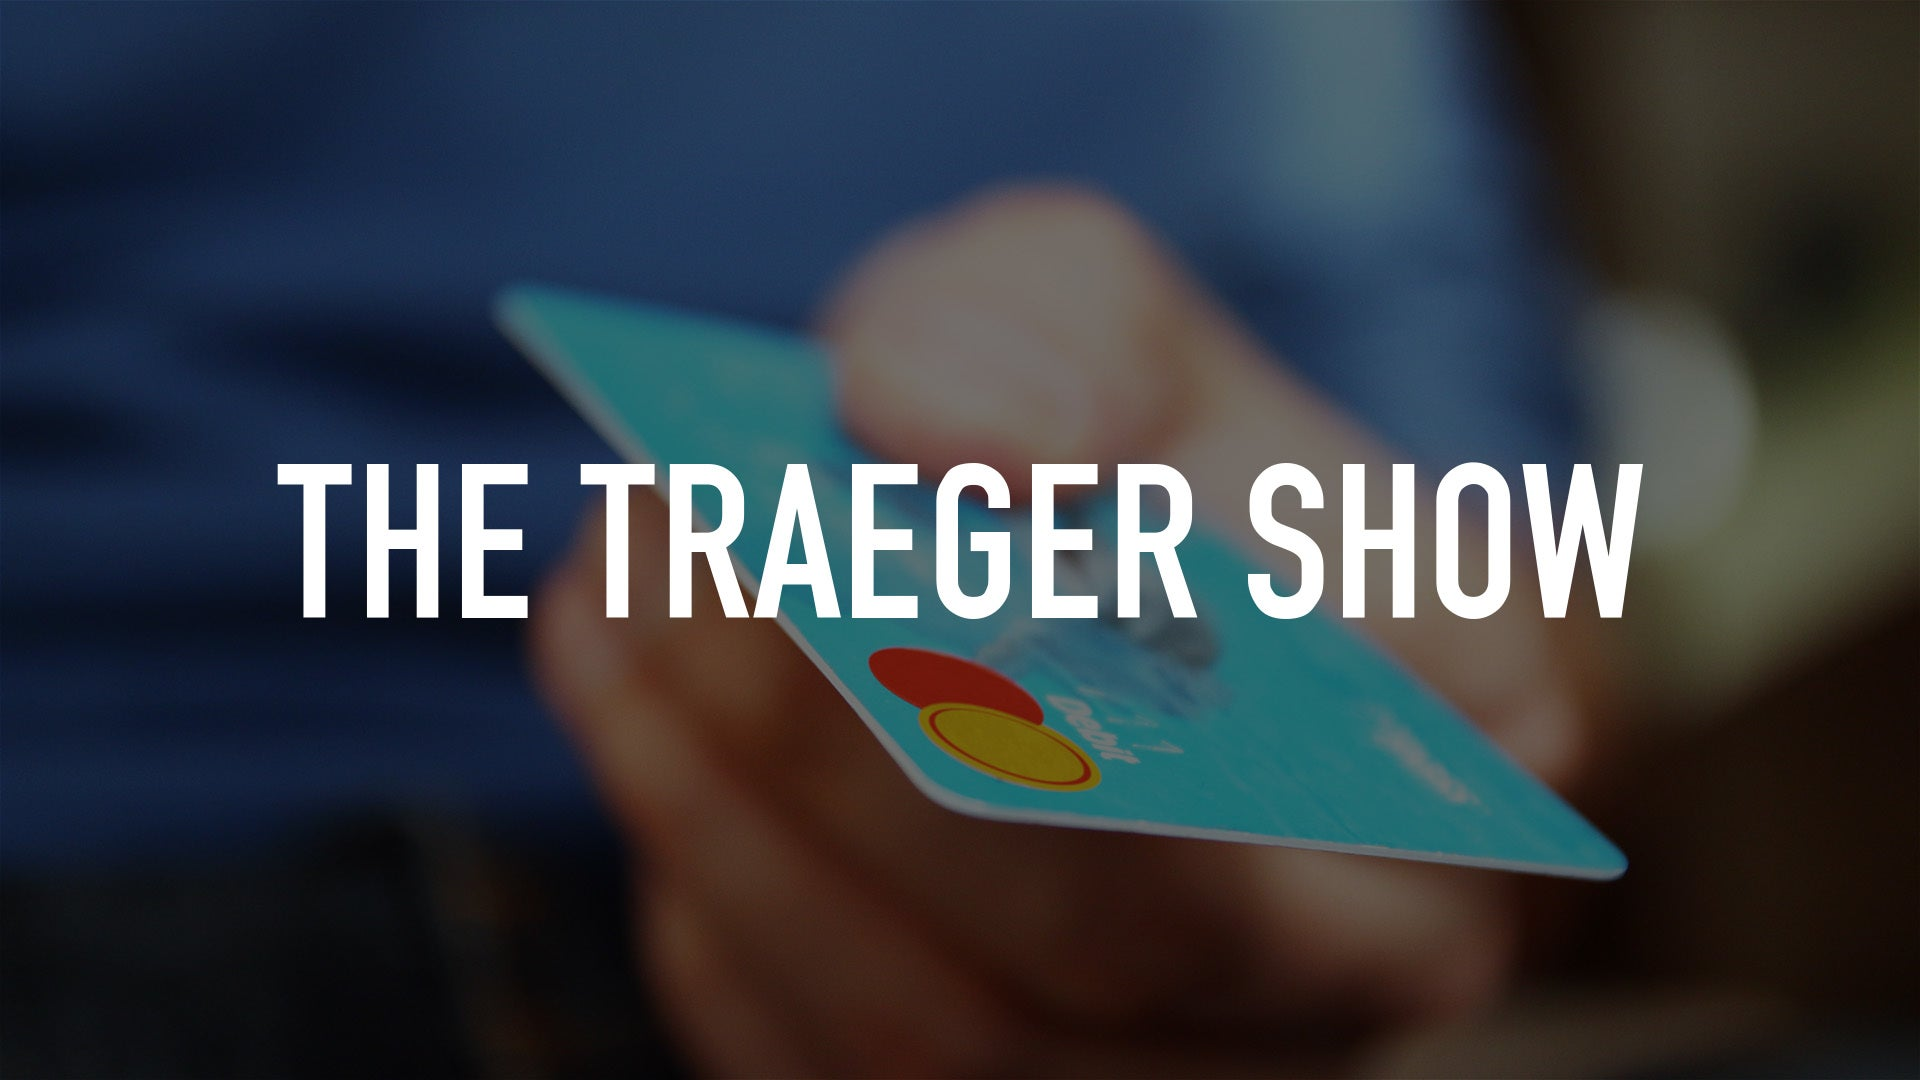 The Traeger Show